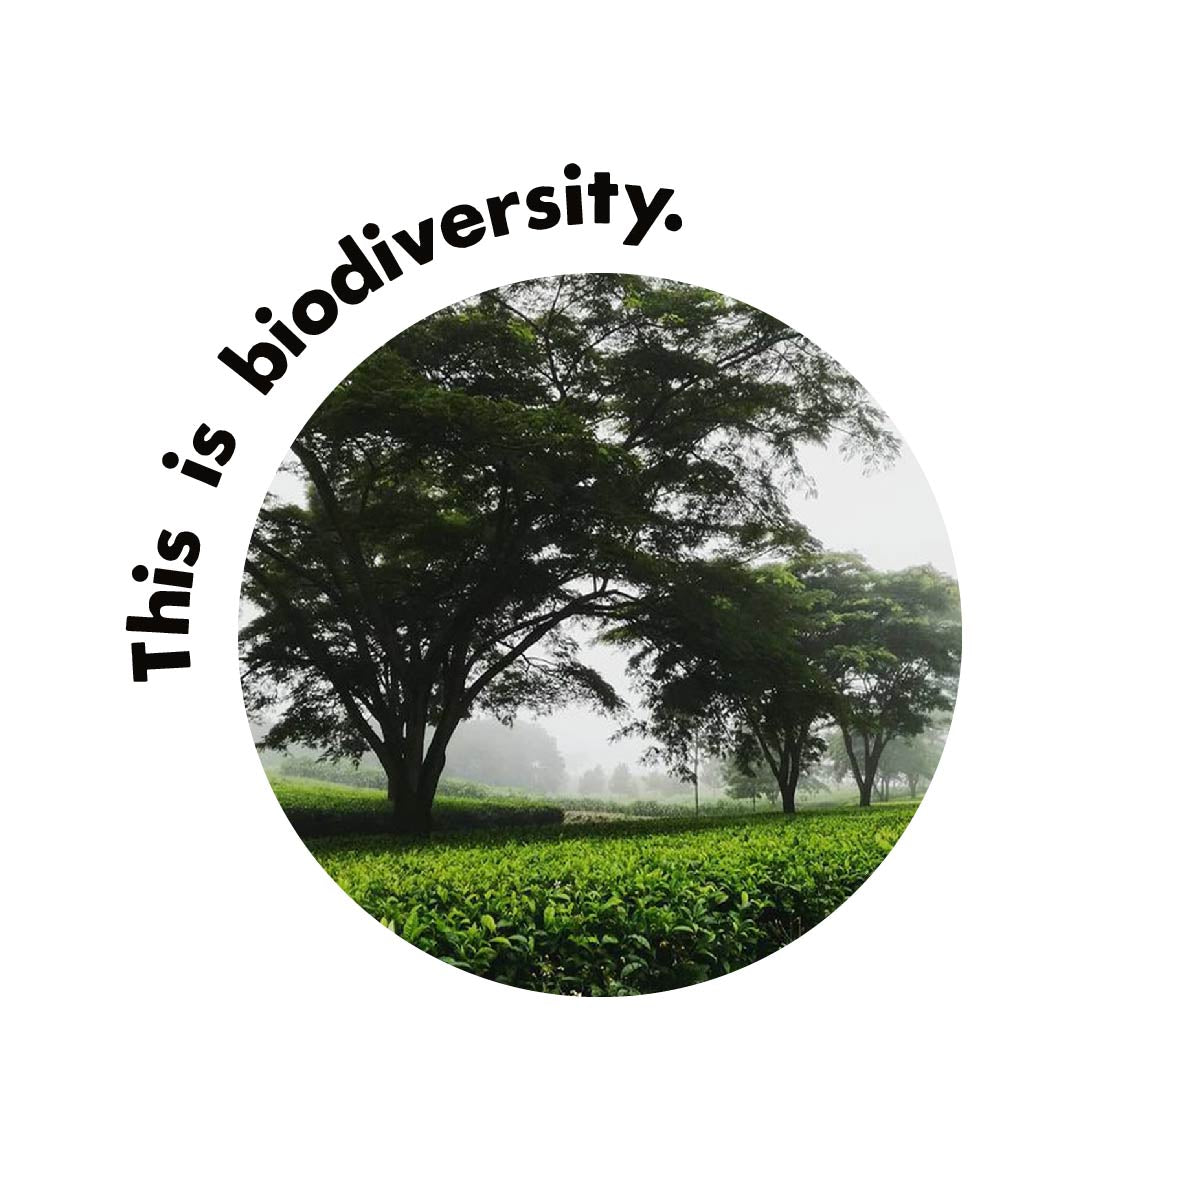 This is Biodiversity with Tree